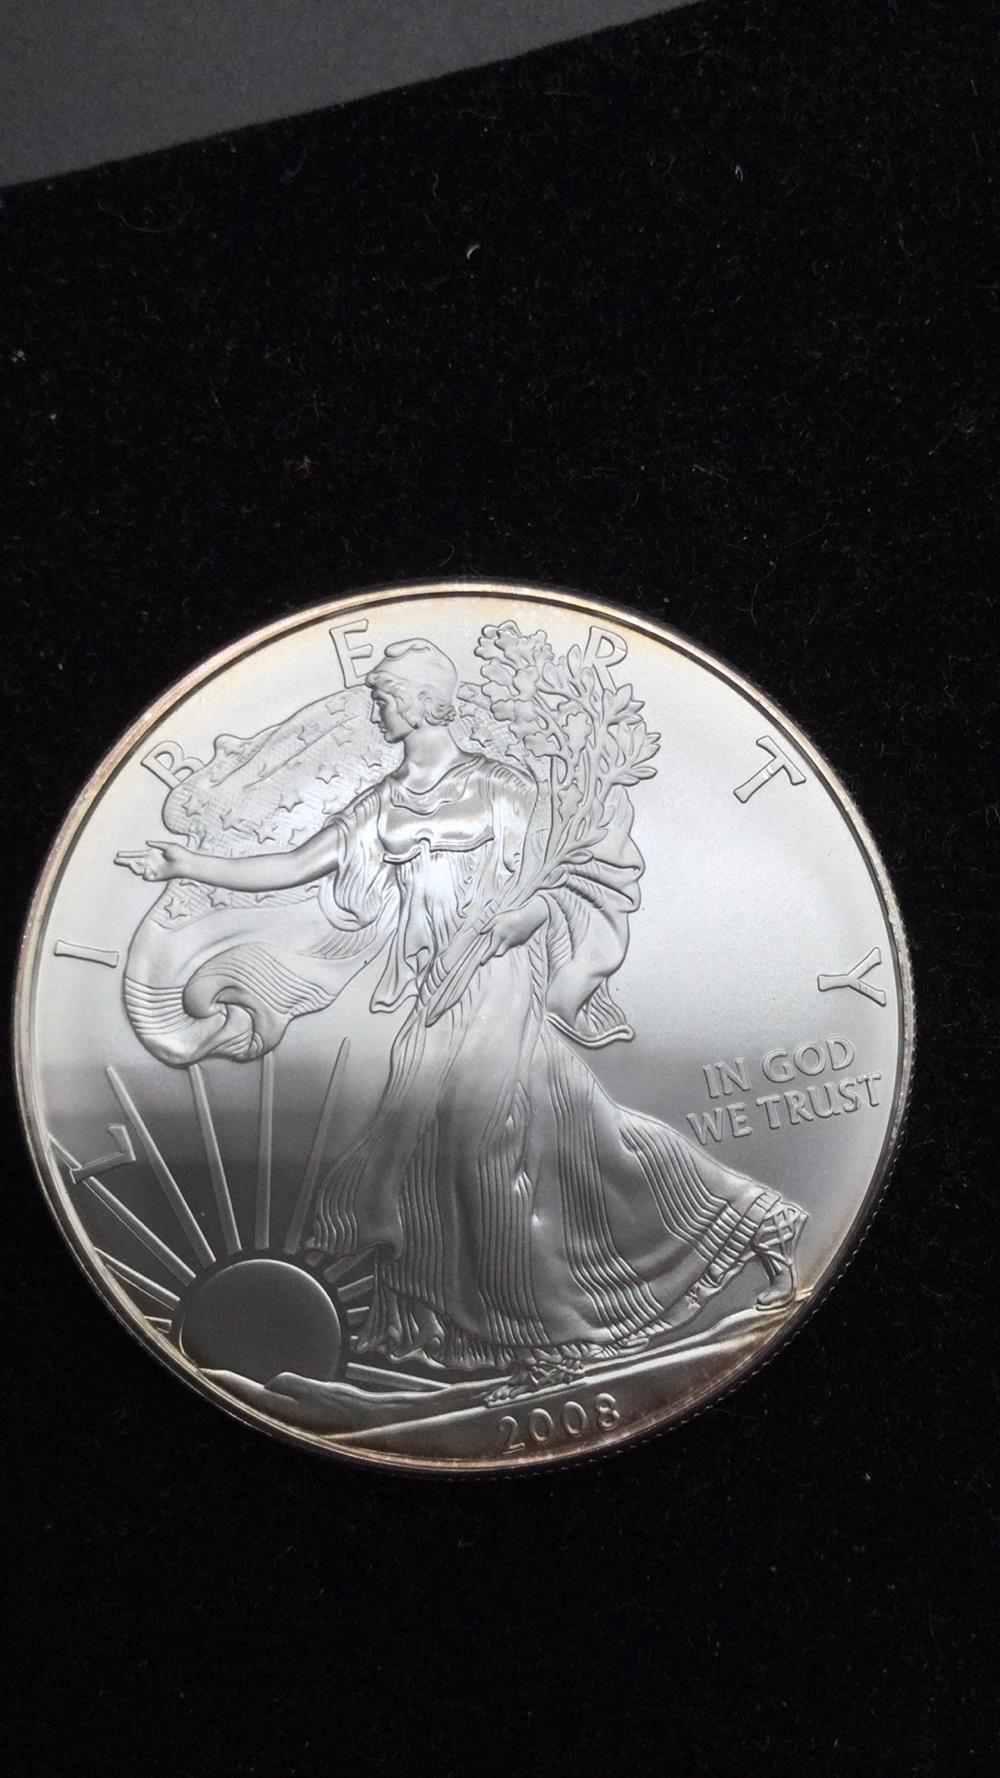 2008 American eagle dollar coin